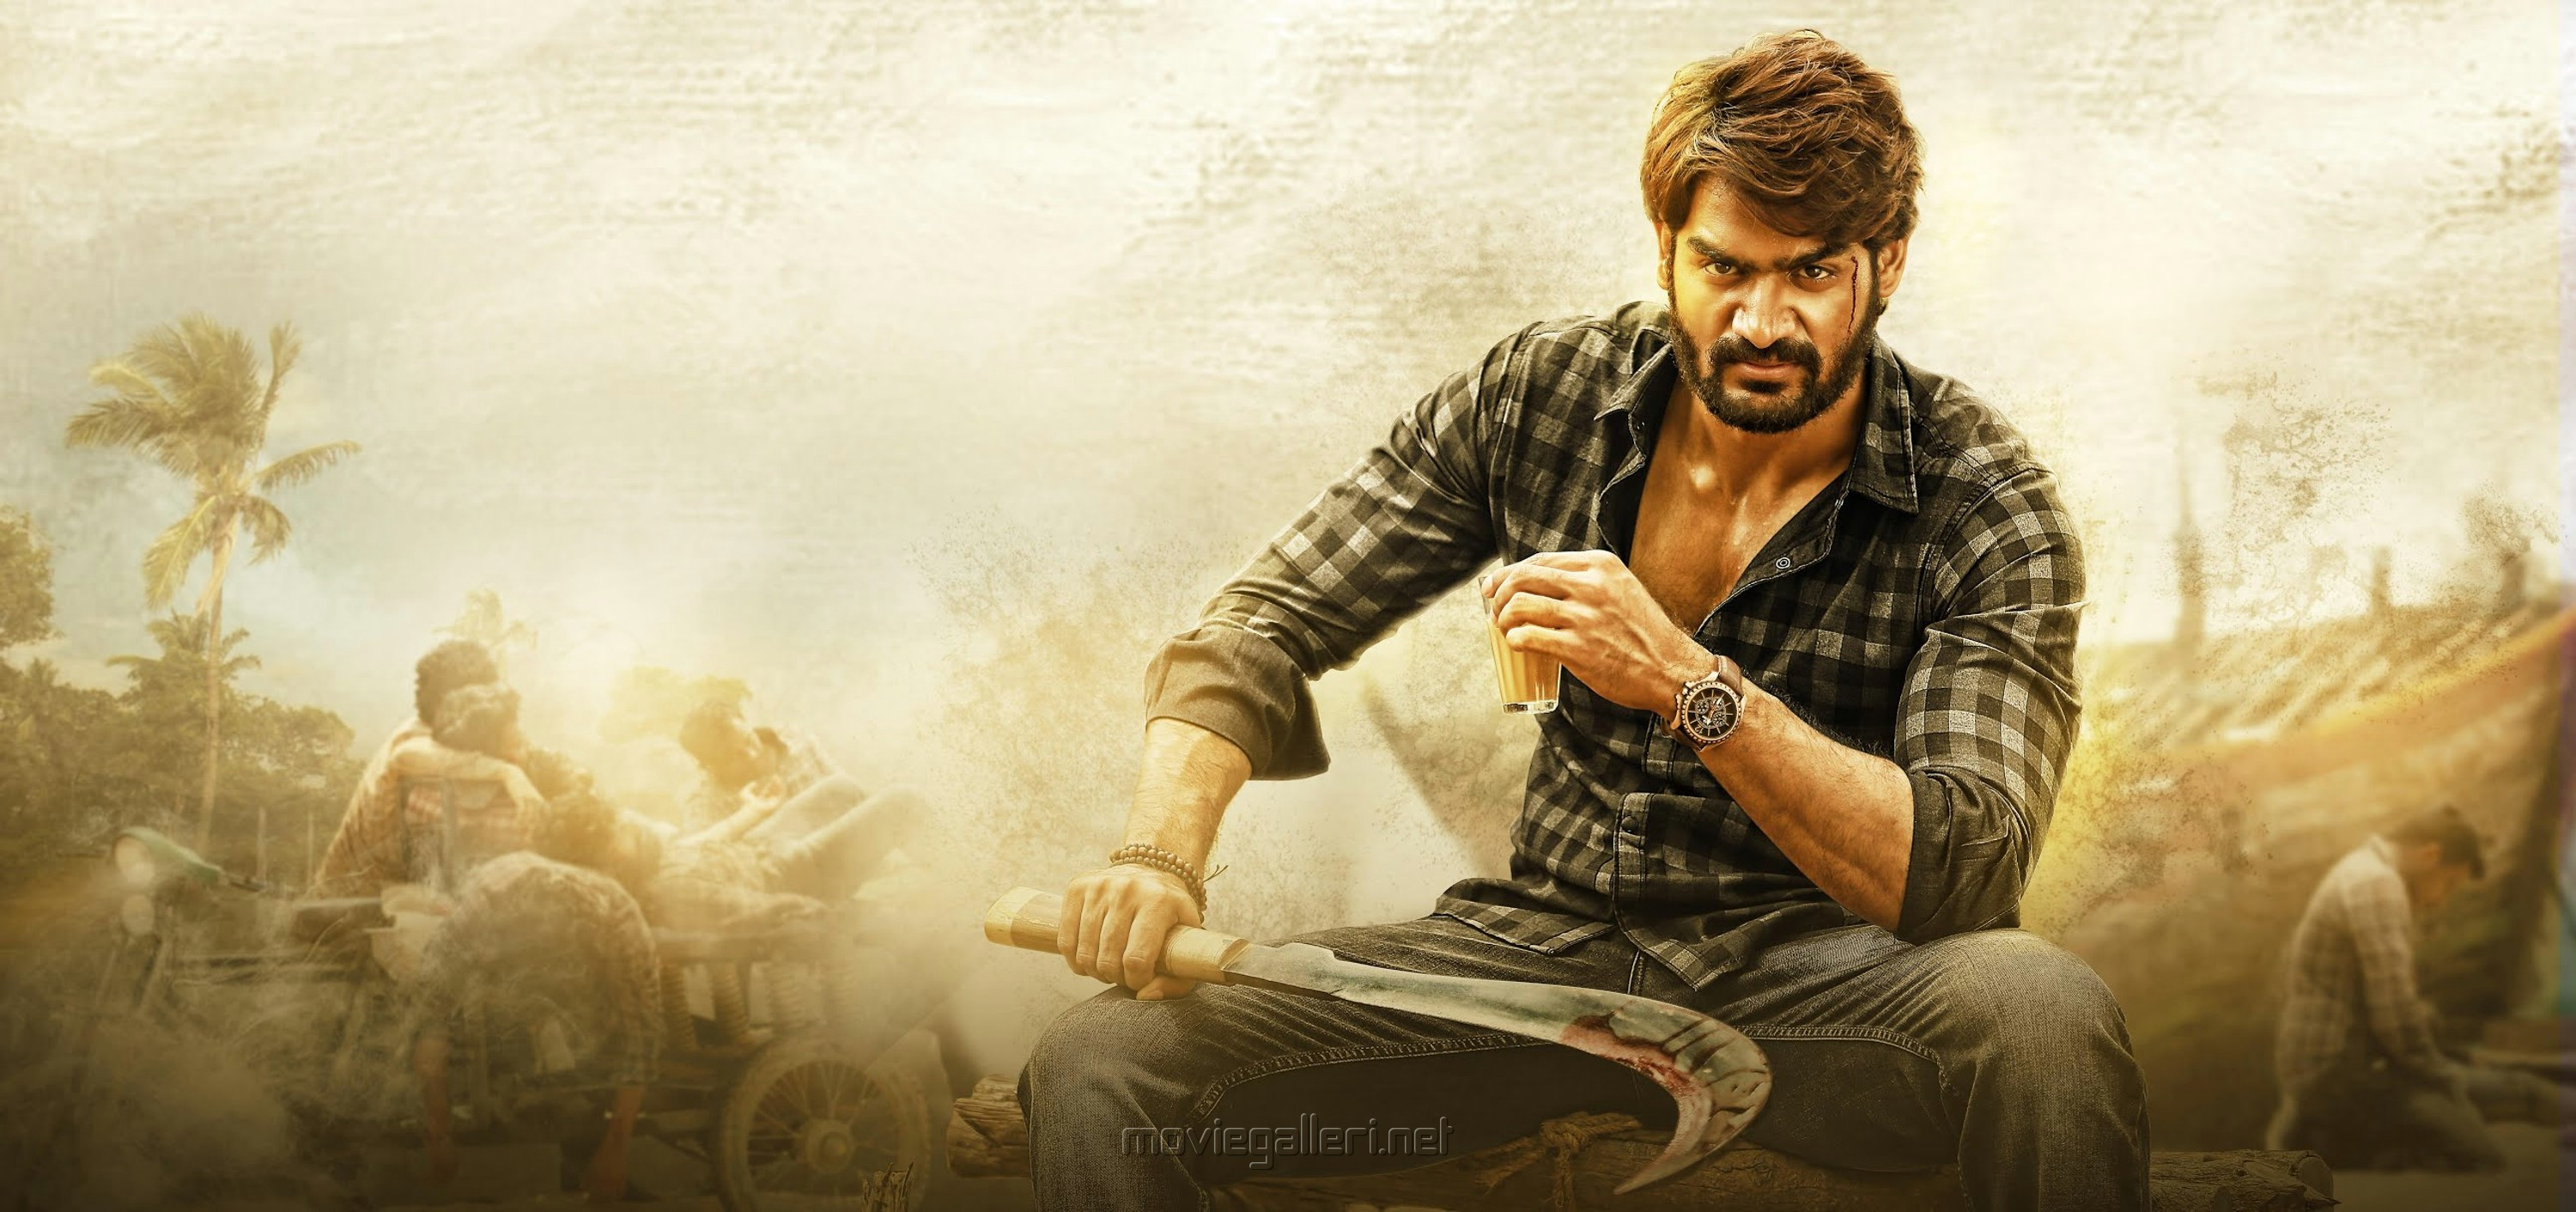 Kartikeya Guna 369 movie release date on August 2nd